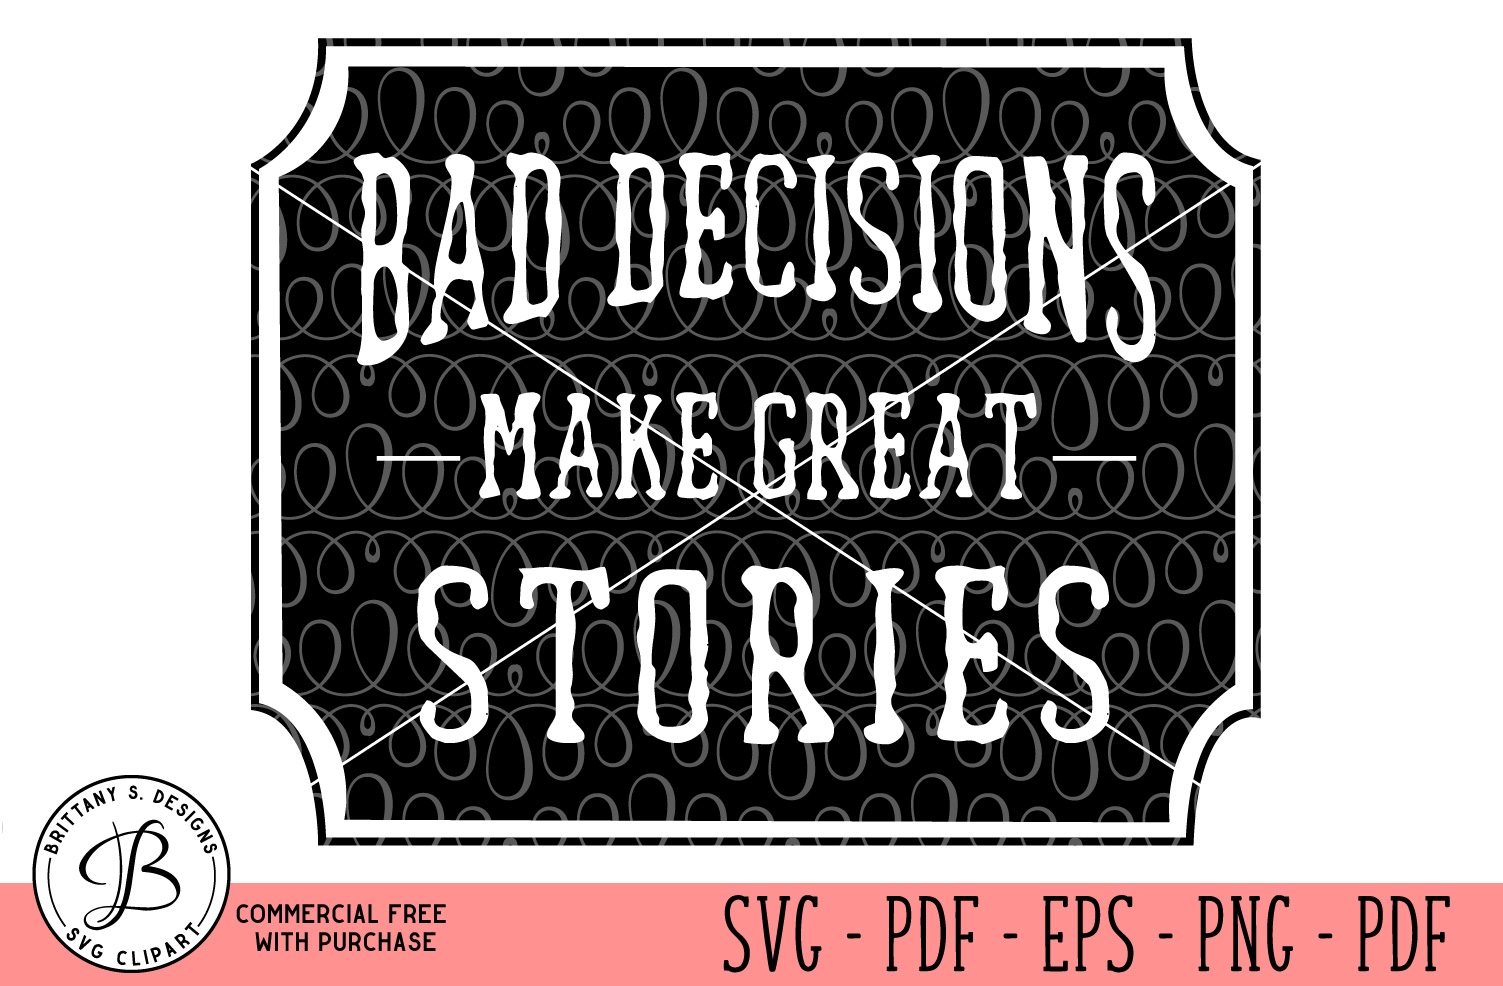 Bad Decisions make best stories SVG example image 1